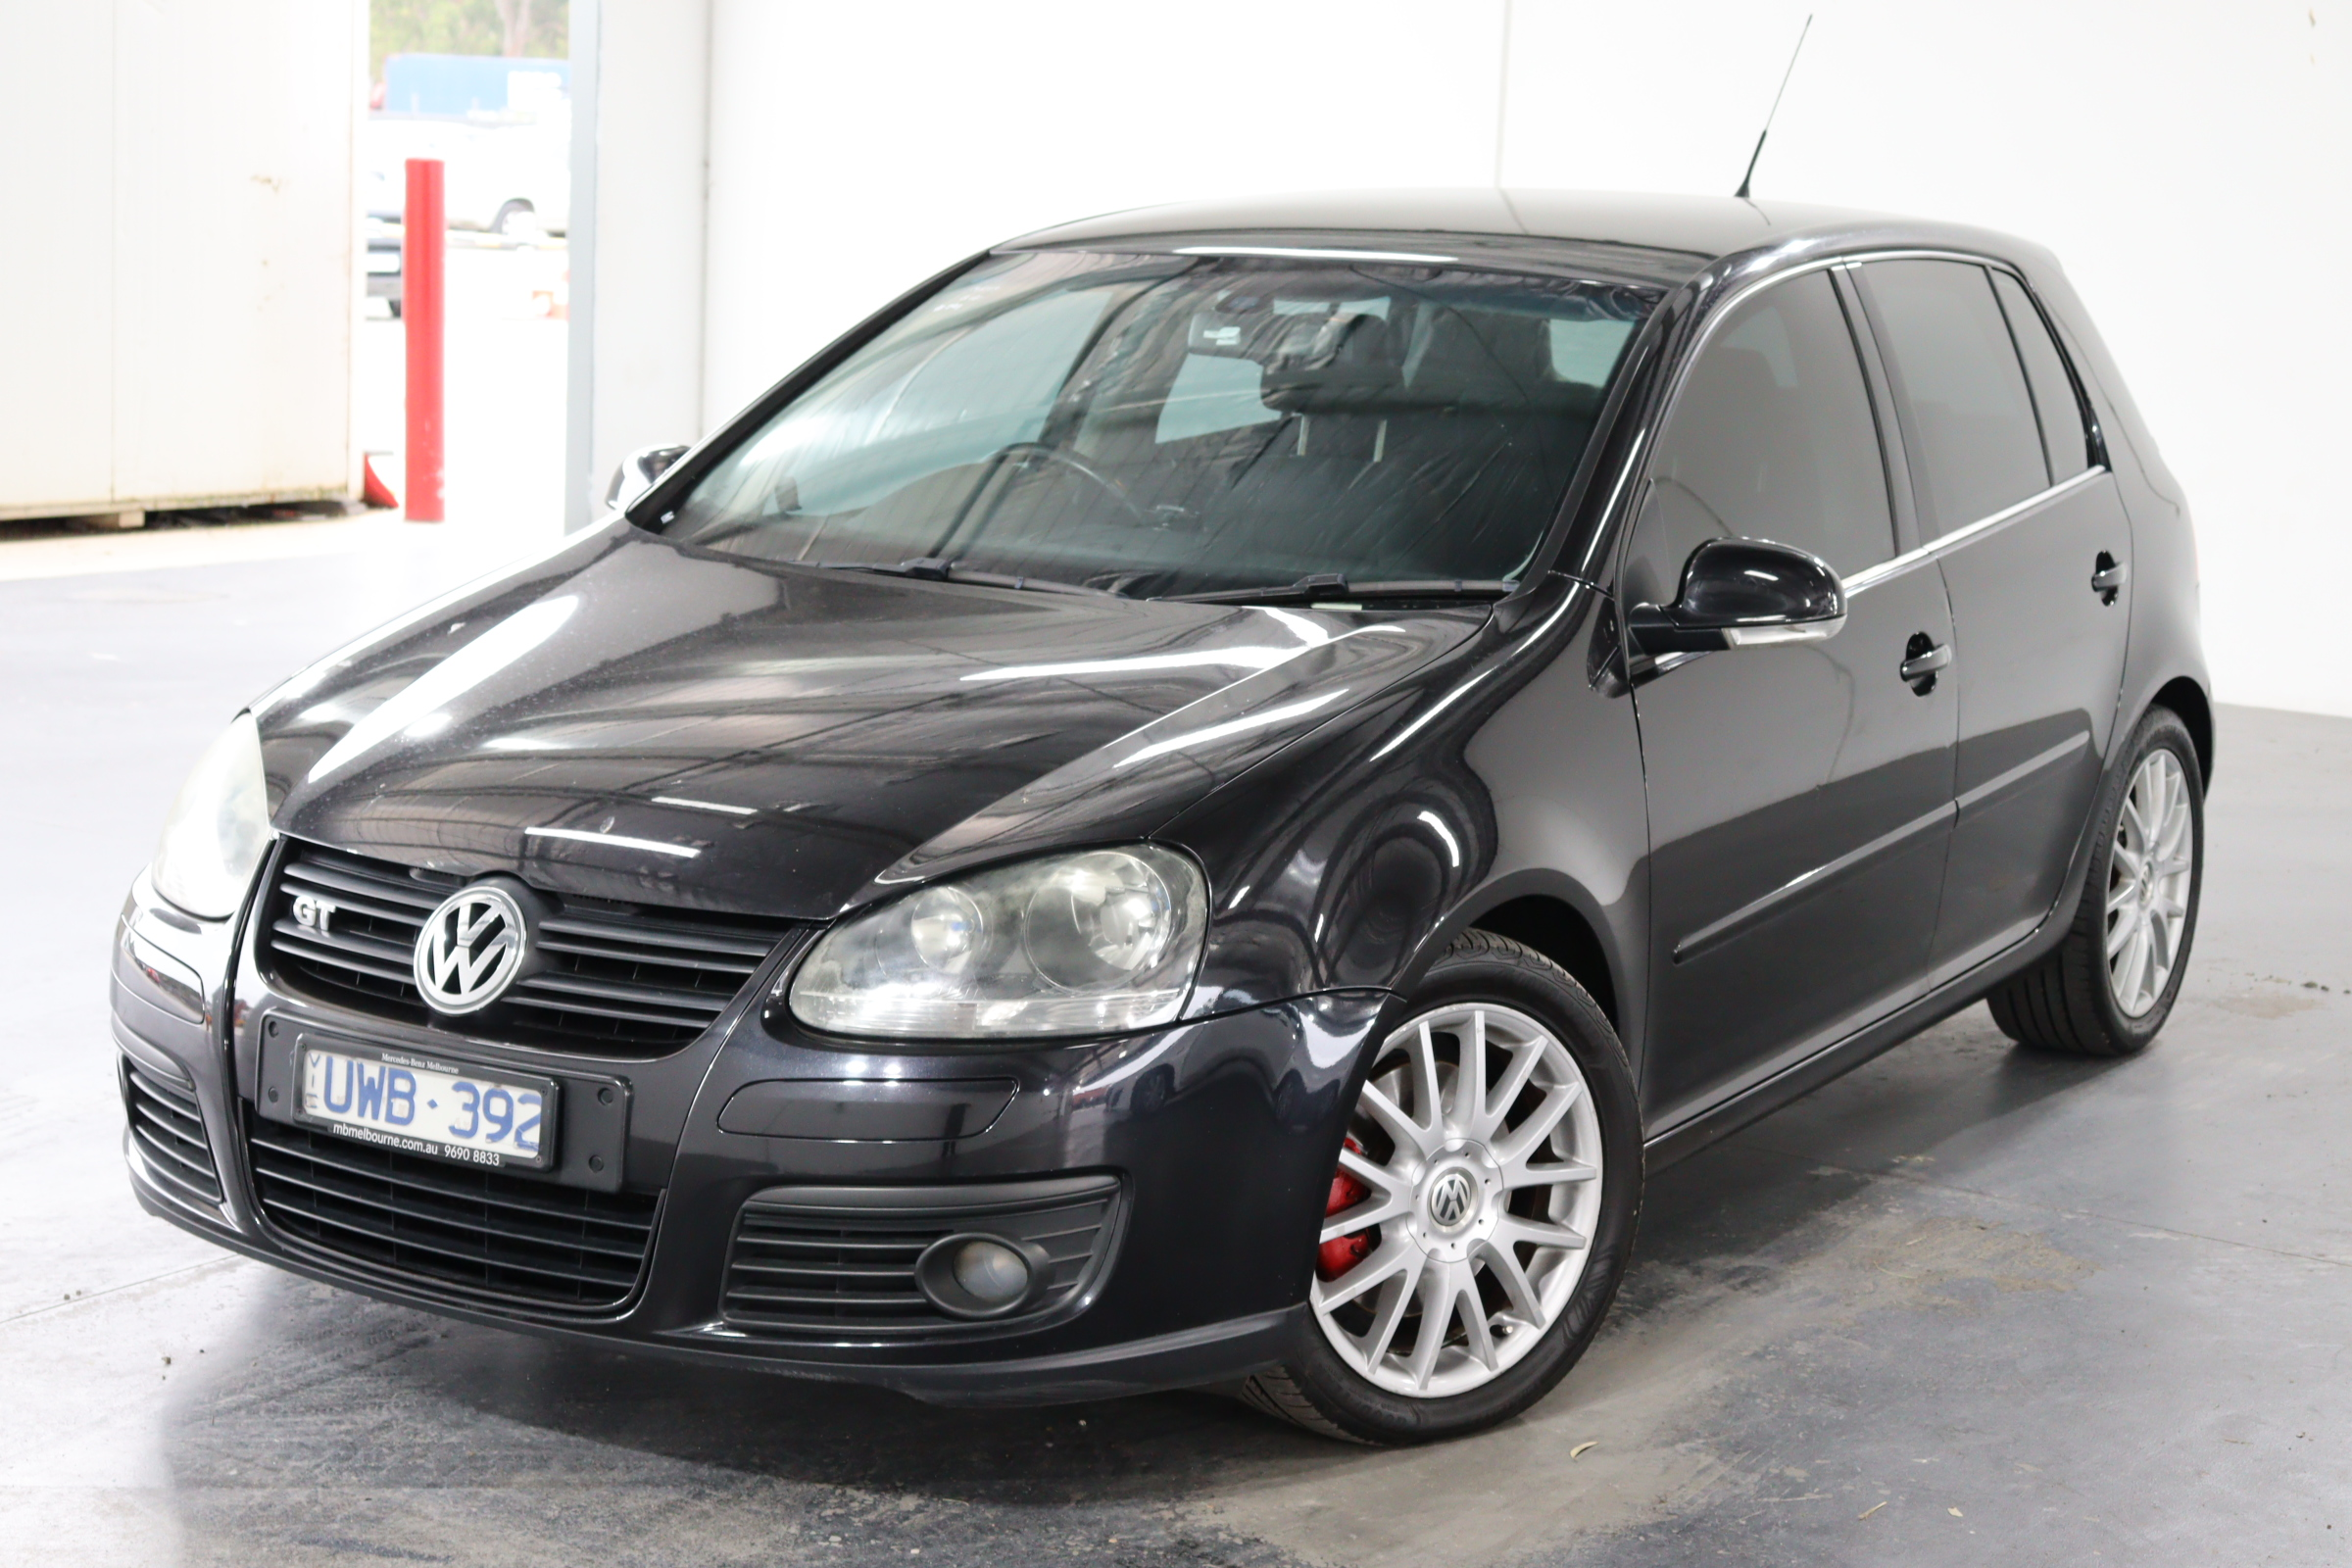 2007 Volkswagen Golf GT TSI A5 Automatic Hatchback